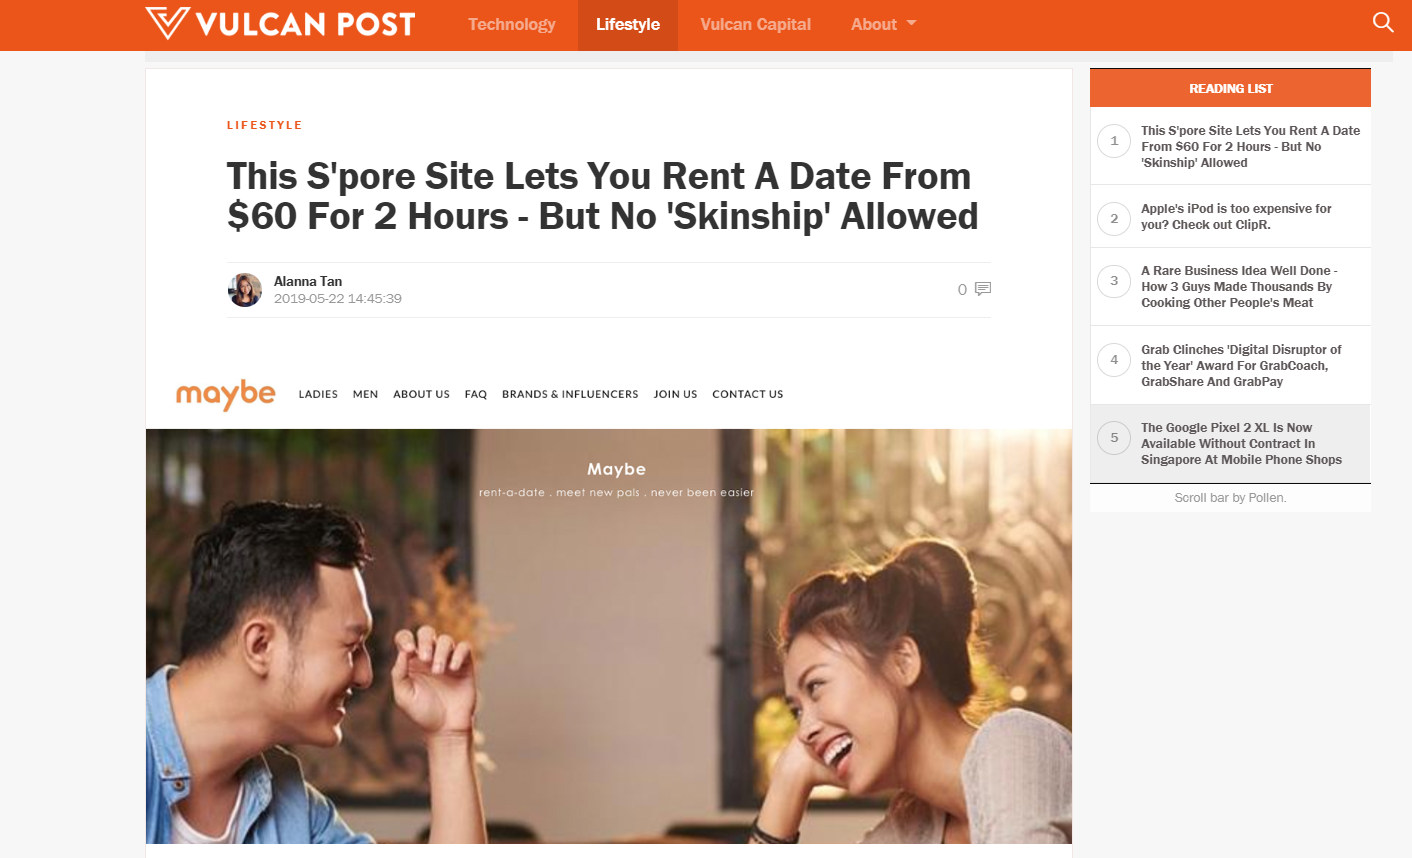 https://vulcanpost.com/664407/maybe-rent-a-date-singapore/